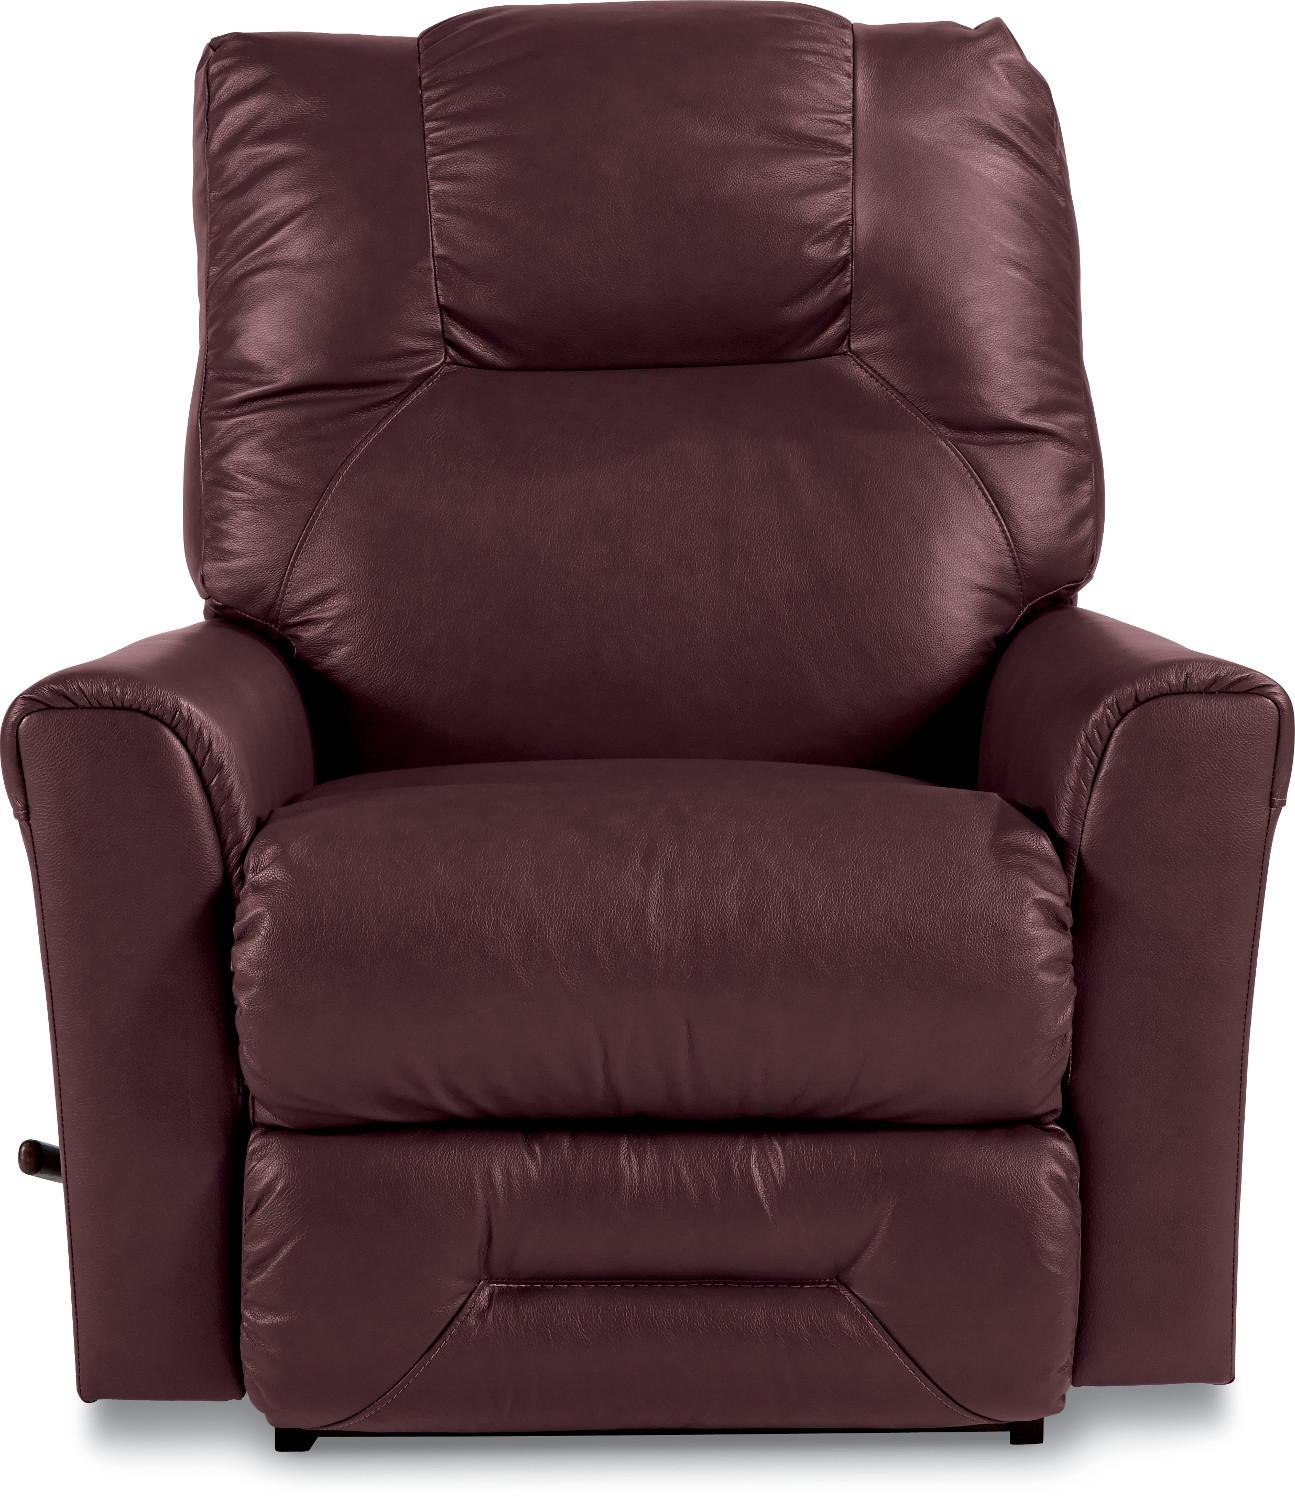 EASTON Rocking Recliner by La-Z-Boy at Bullard Furniture